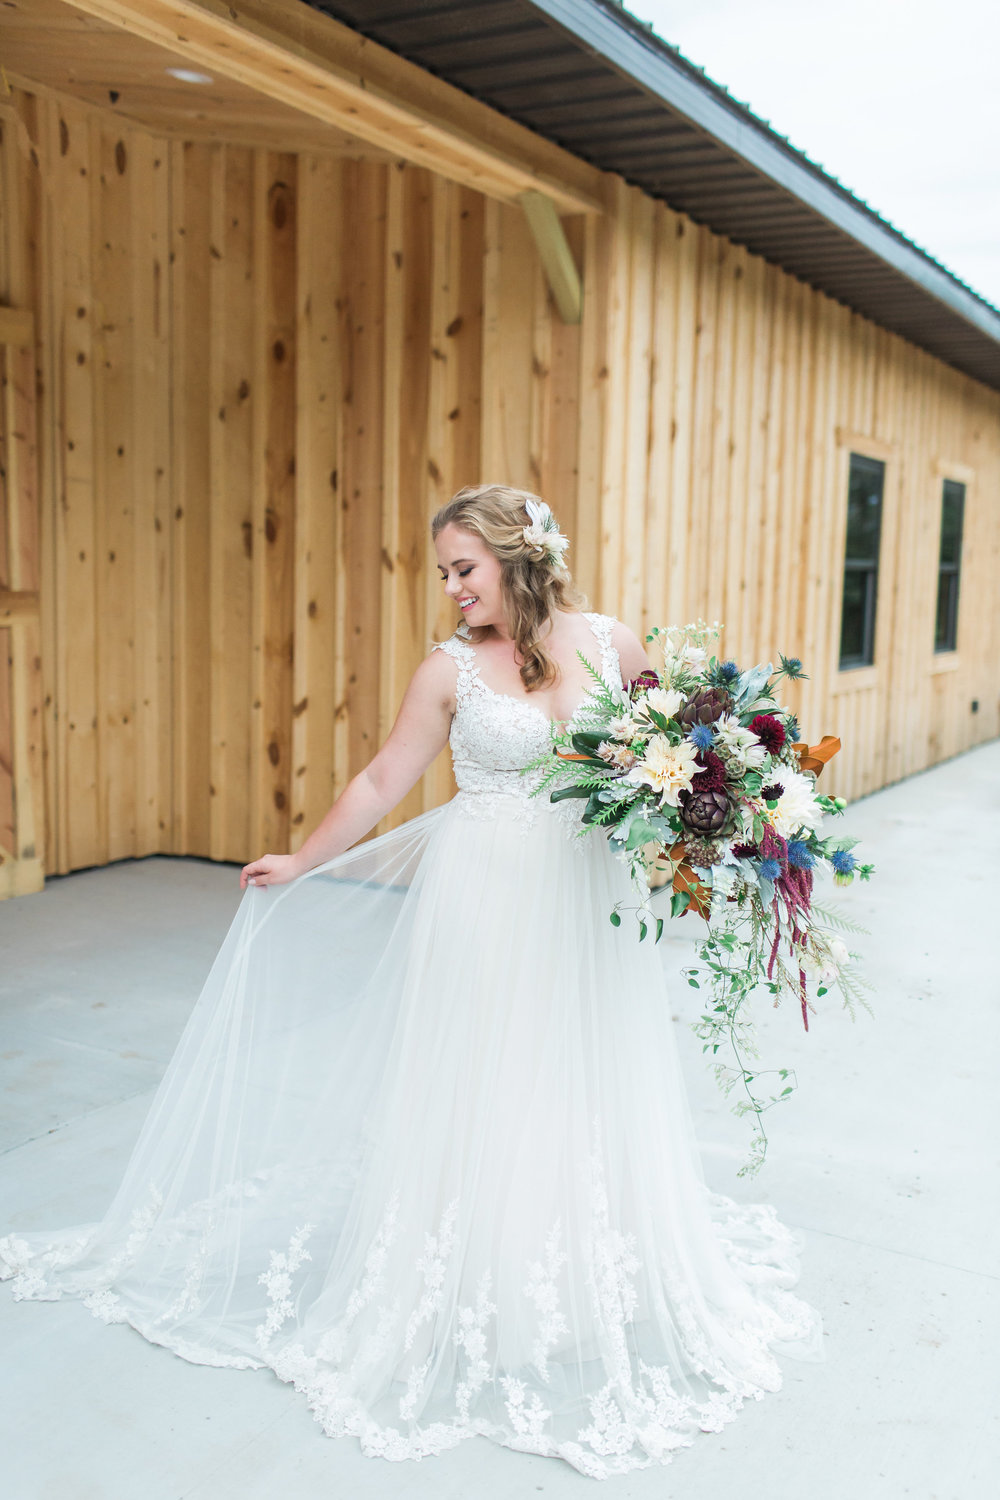 country-lane-lodge-adel-iowa-wedding-venue-white-lace-dress-purple-red-lush-bouquet-planned-by-mostly-becky-weddings